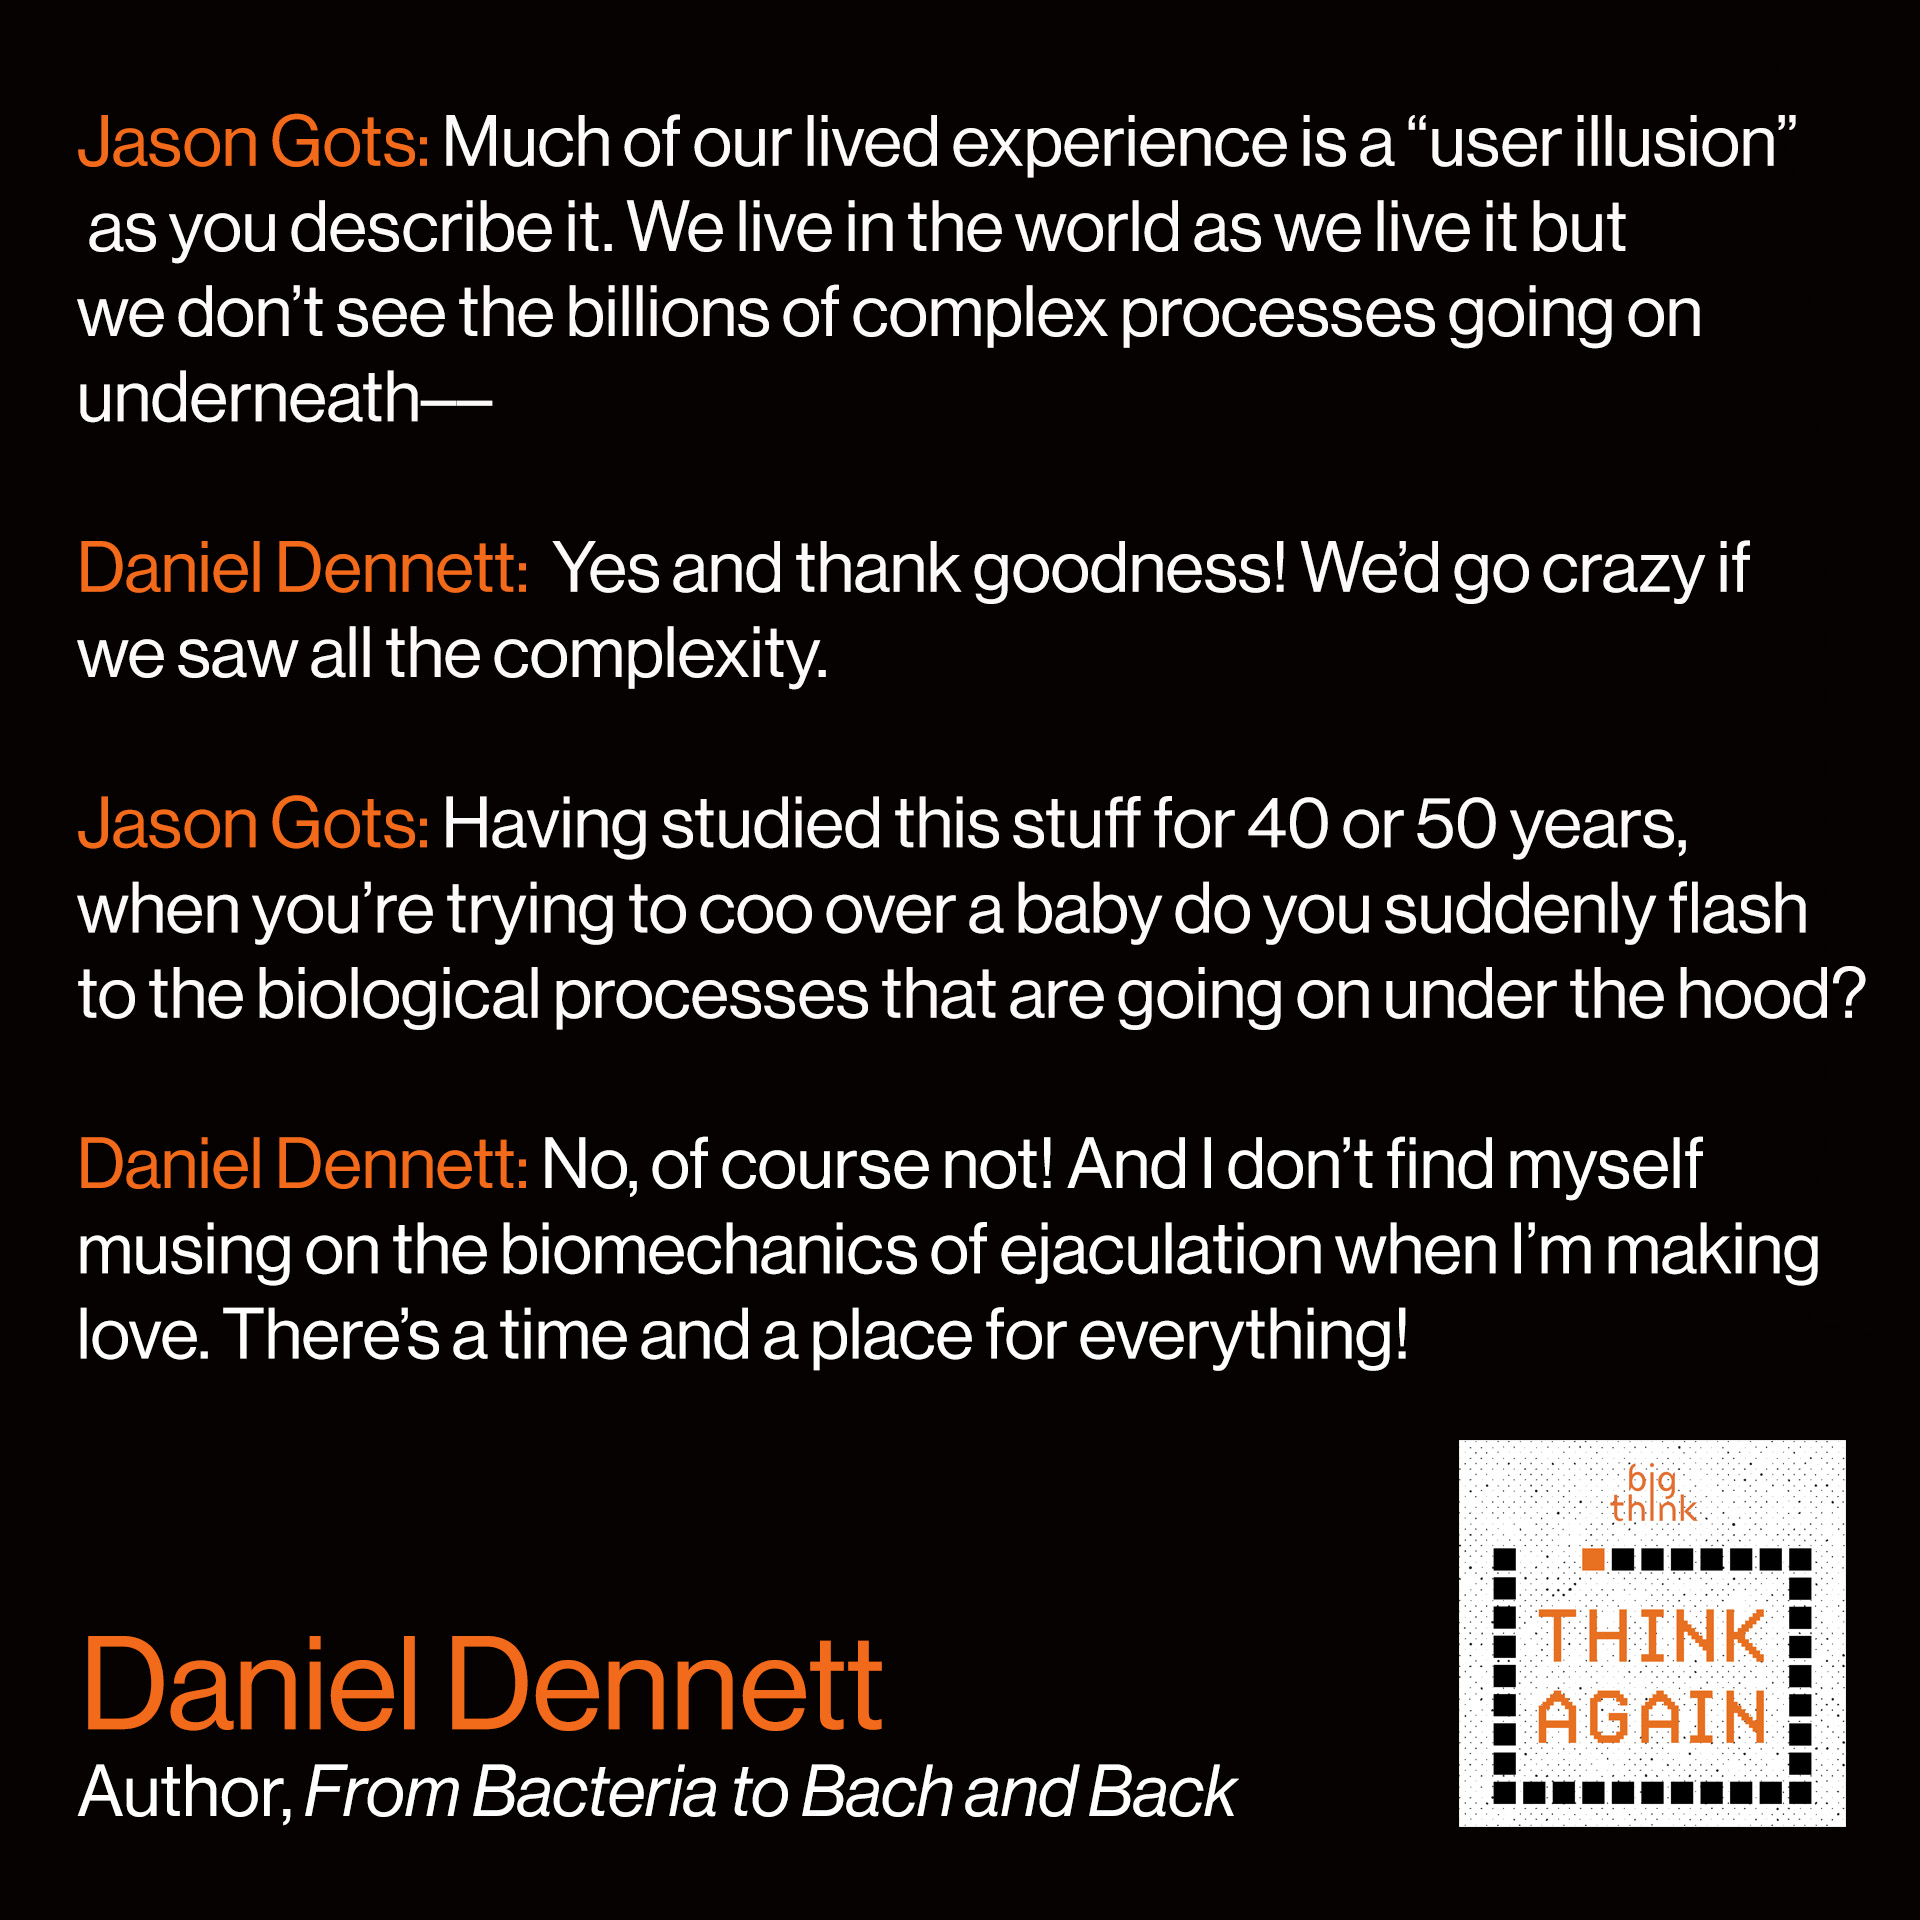 "Conversation between host Jason Gots and Daniel Dennett: JG: Much of our lived experience is a ""user illusion"" as you describe it. We live in the world as we live it but we don't see the billions of complex processes going on underneath––  DD: Yes and thank goodness! We'd go crazy if we saw all the complexity.    JG: But I wondered for you, personally, having studied this stuff for…40 or 50 years…do you find that the world as-is de-rezzes…? When you're trying to coo over a baby do you suddenly flash to the biological processes that are going on under the hood?   DD: No, of course not! And I don't find myself musing on the biomechanics of ejaculation when I'm making love. There's a time and a place for everything."